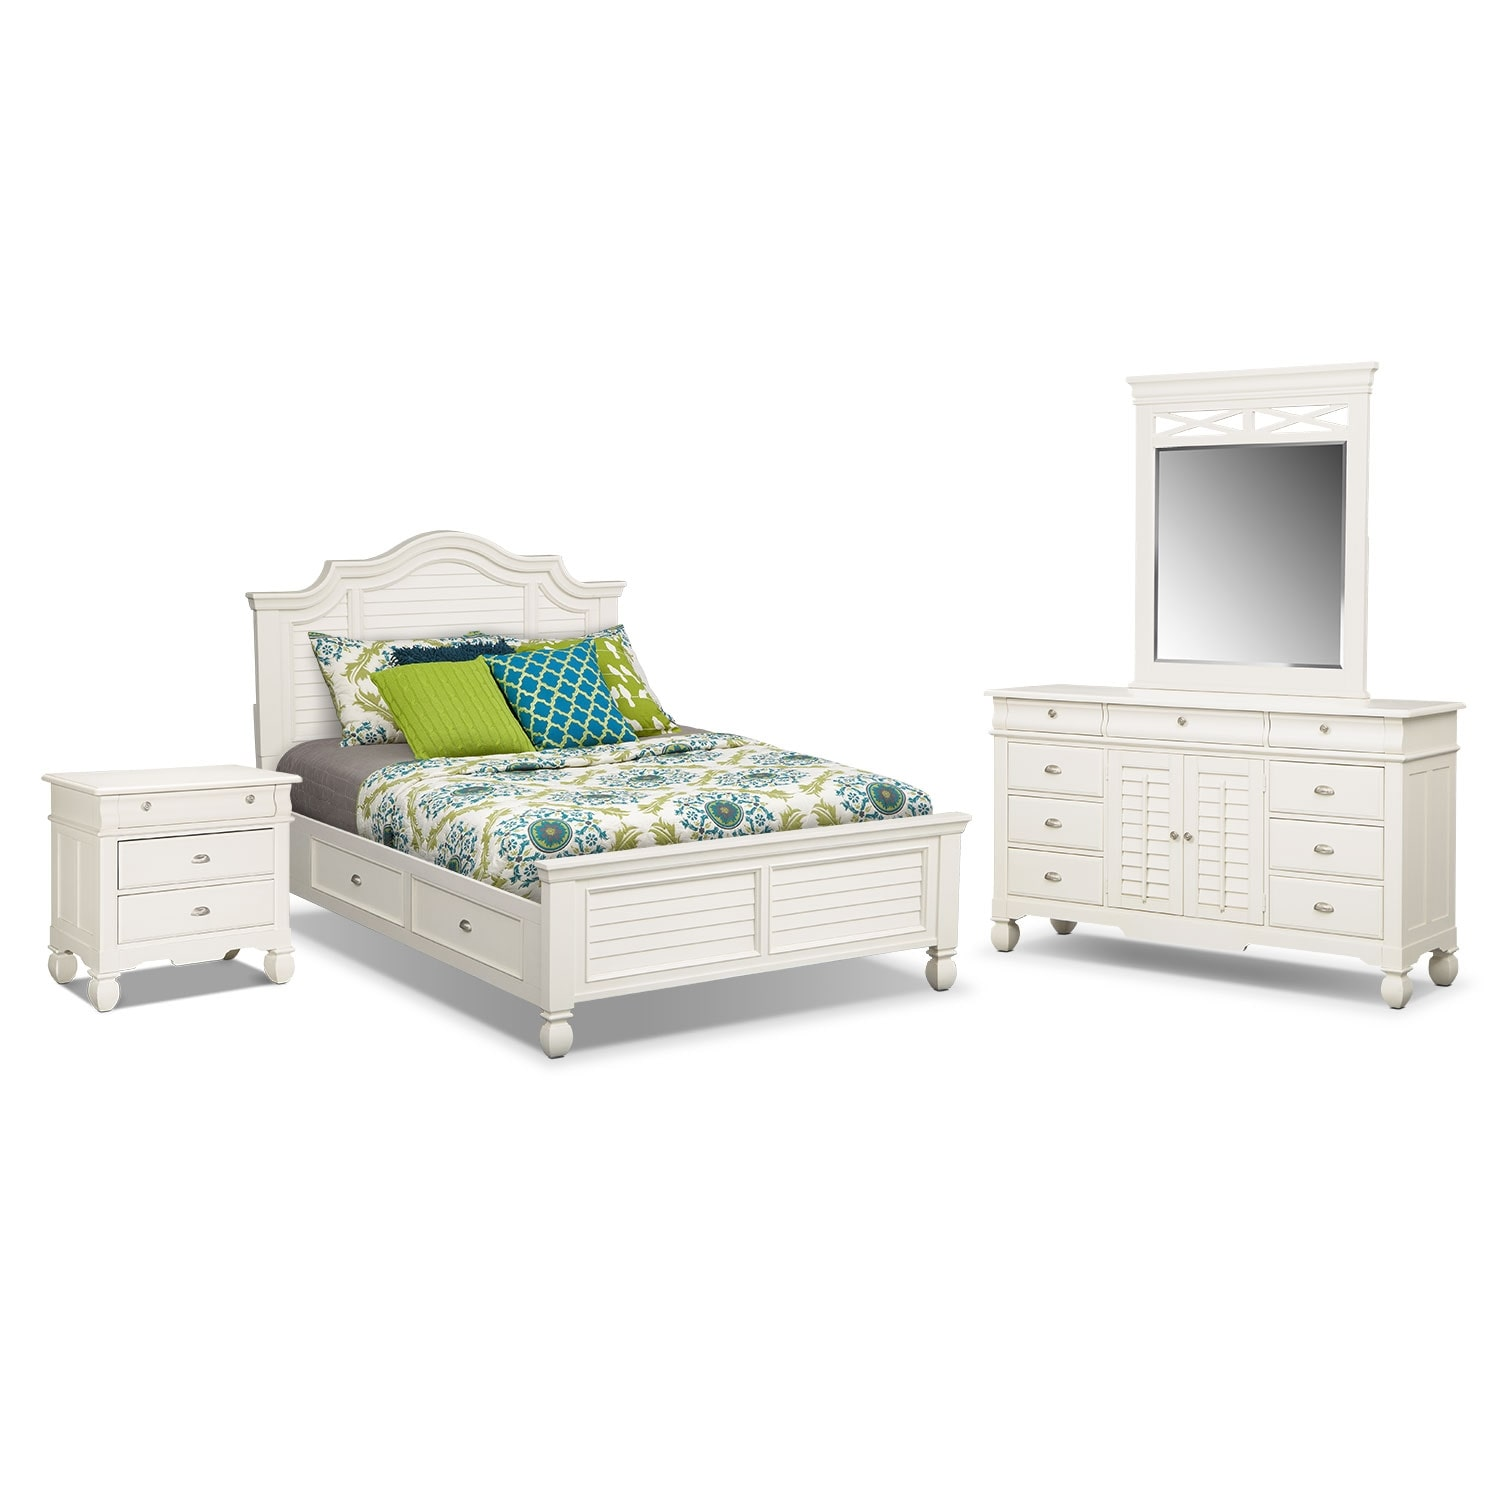 Bedroom Furniture - Plantation Cove 6-Piece King Storage Bedroom Set - White